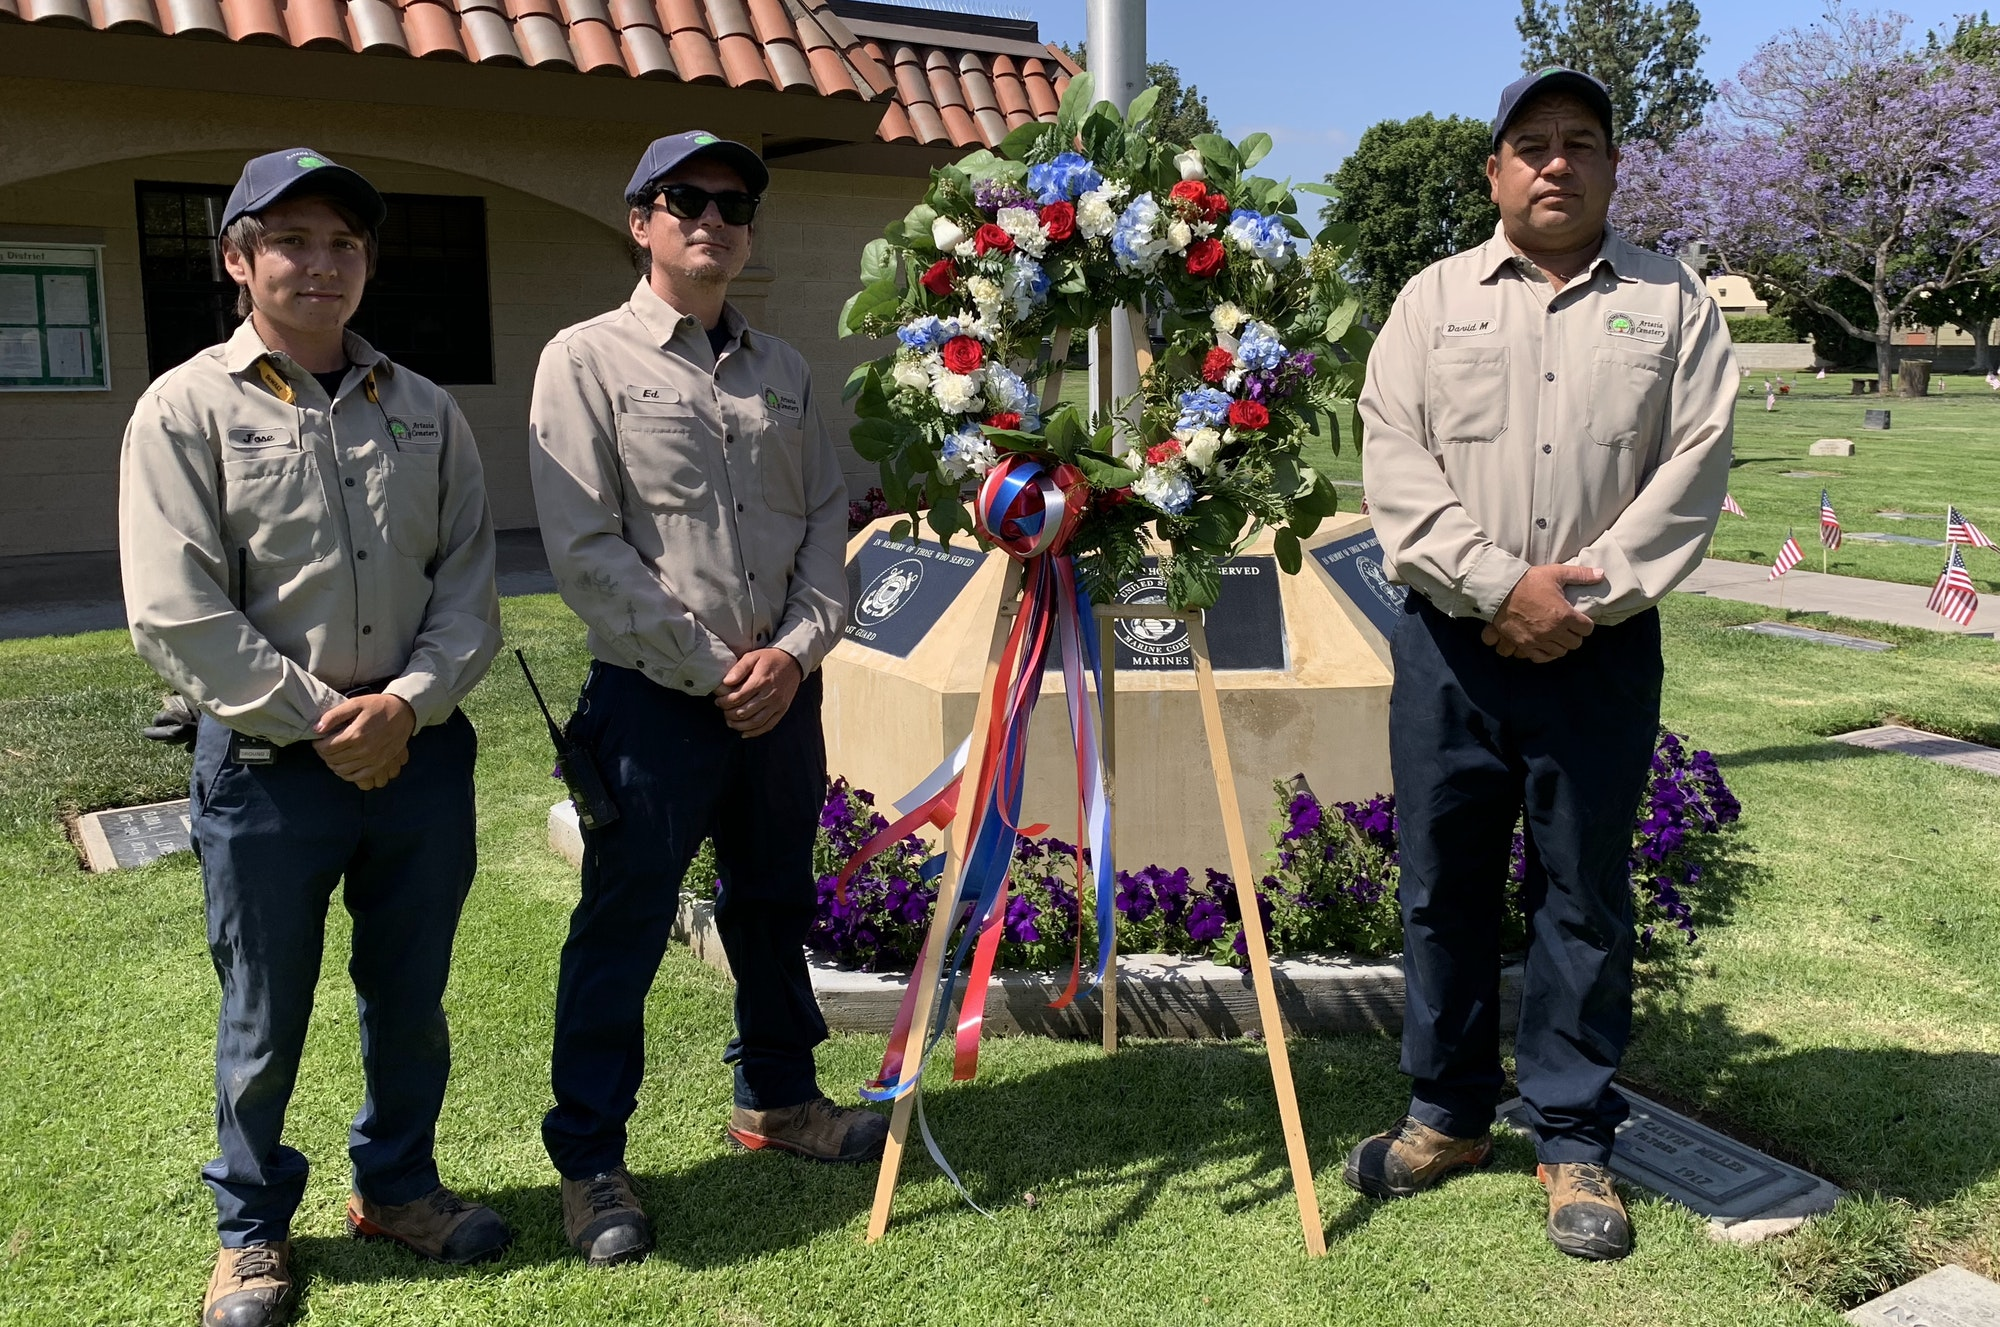 Groundskeepers (Left to Right): Jose, Eddie, and David